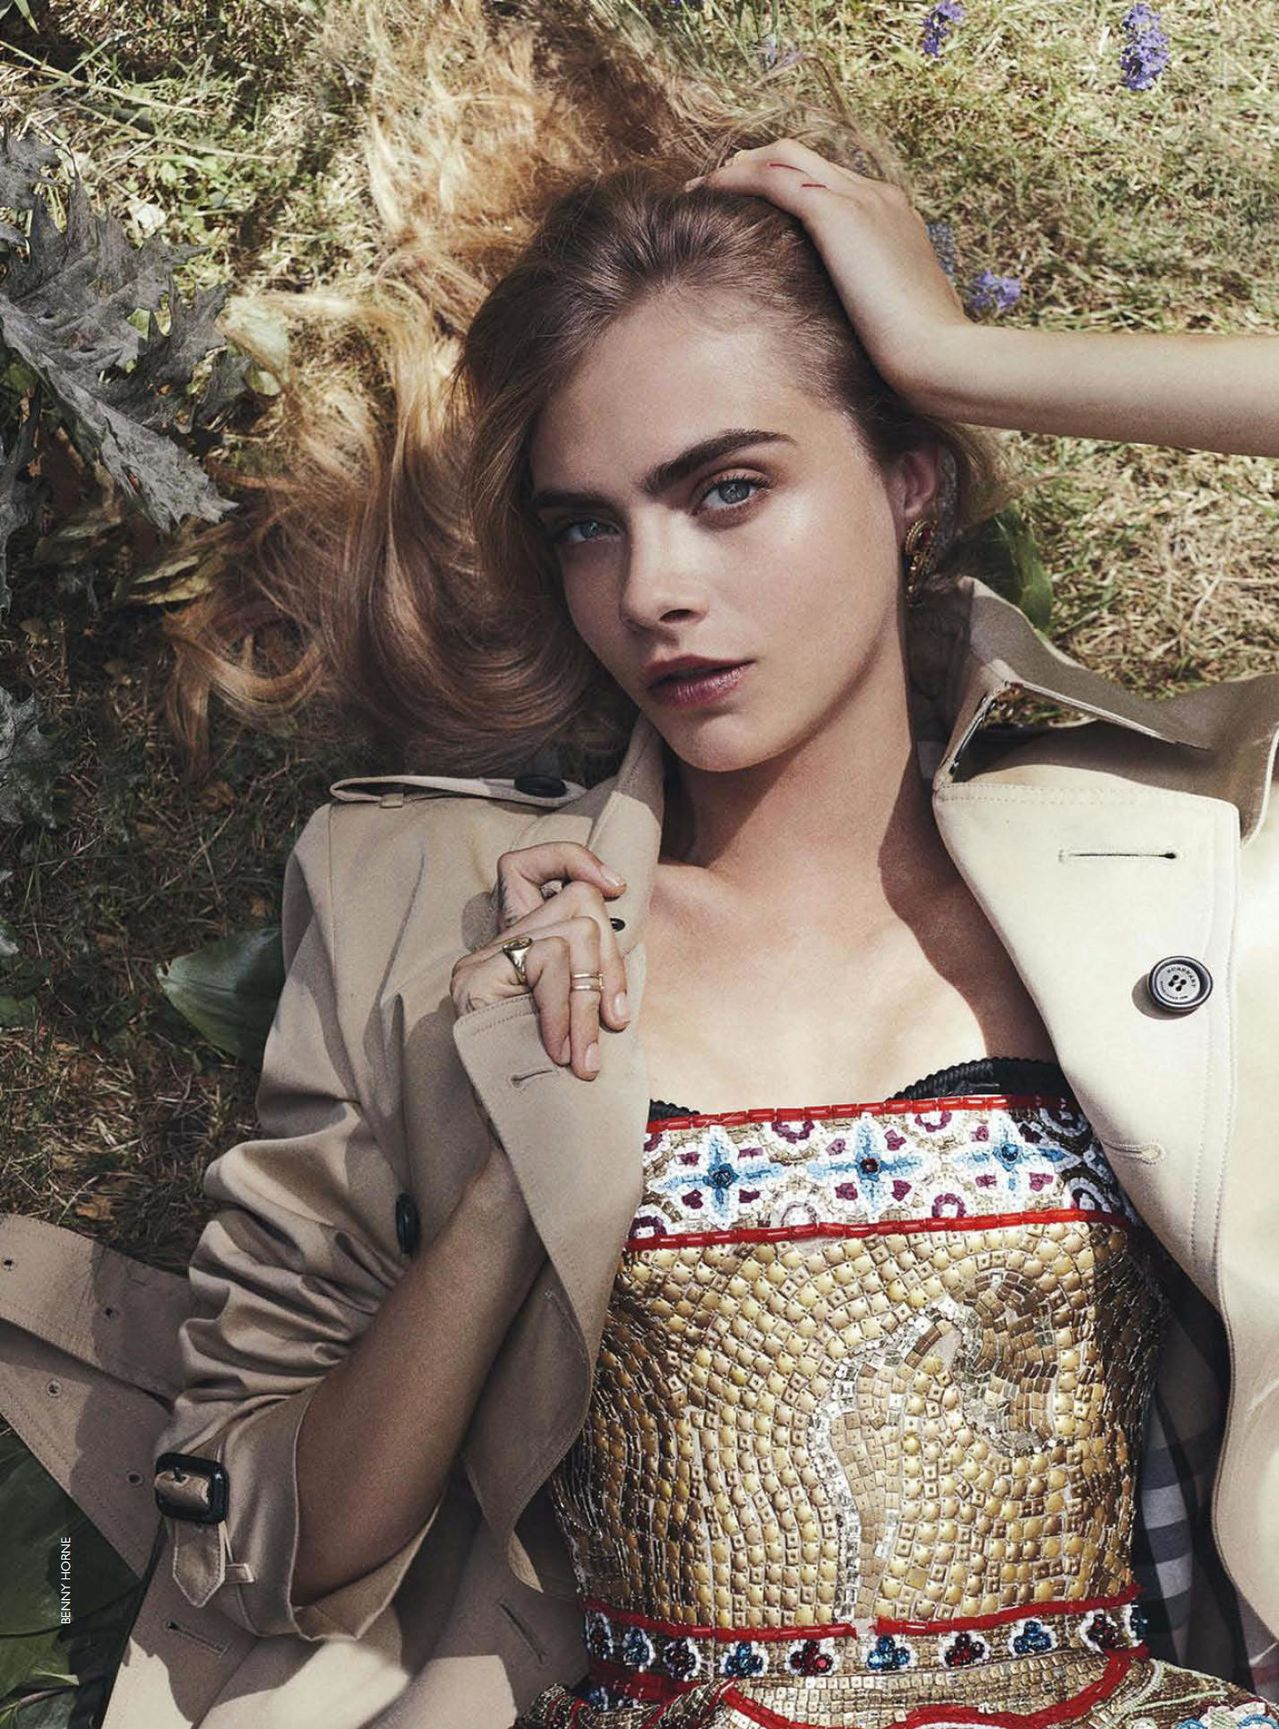 Cara Delevingne photography by Benny Horne for Vogue Australia, October 2013